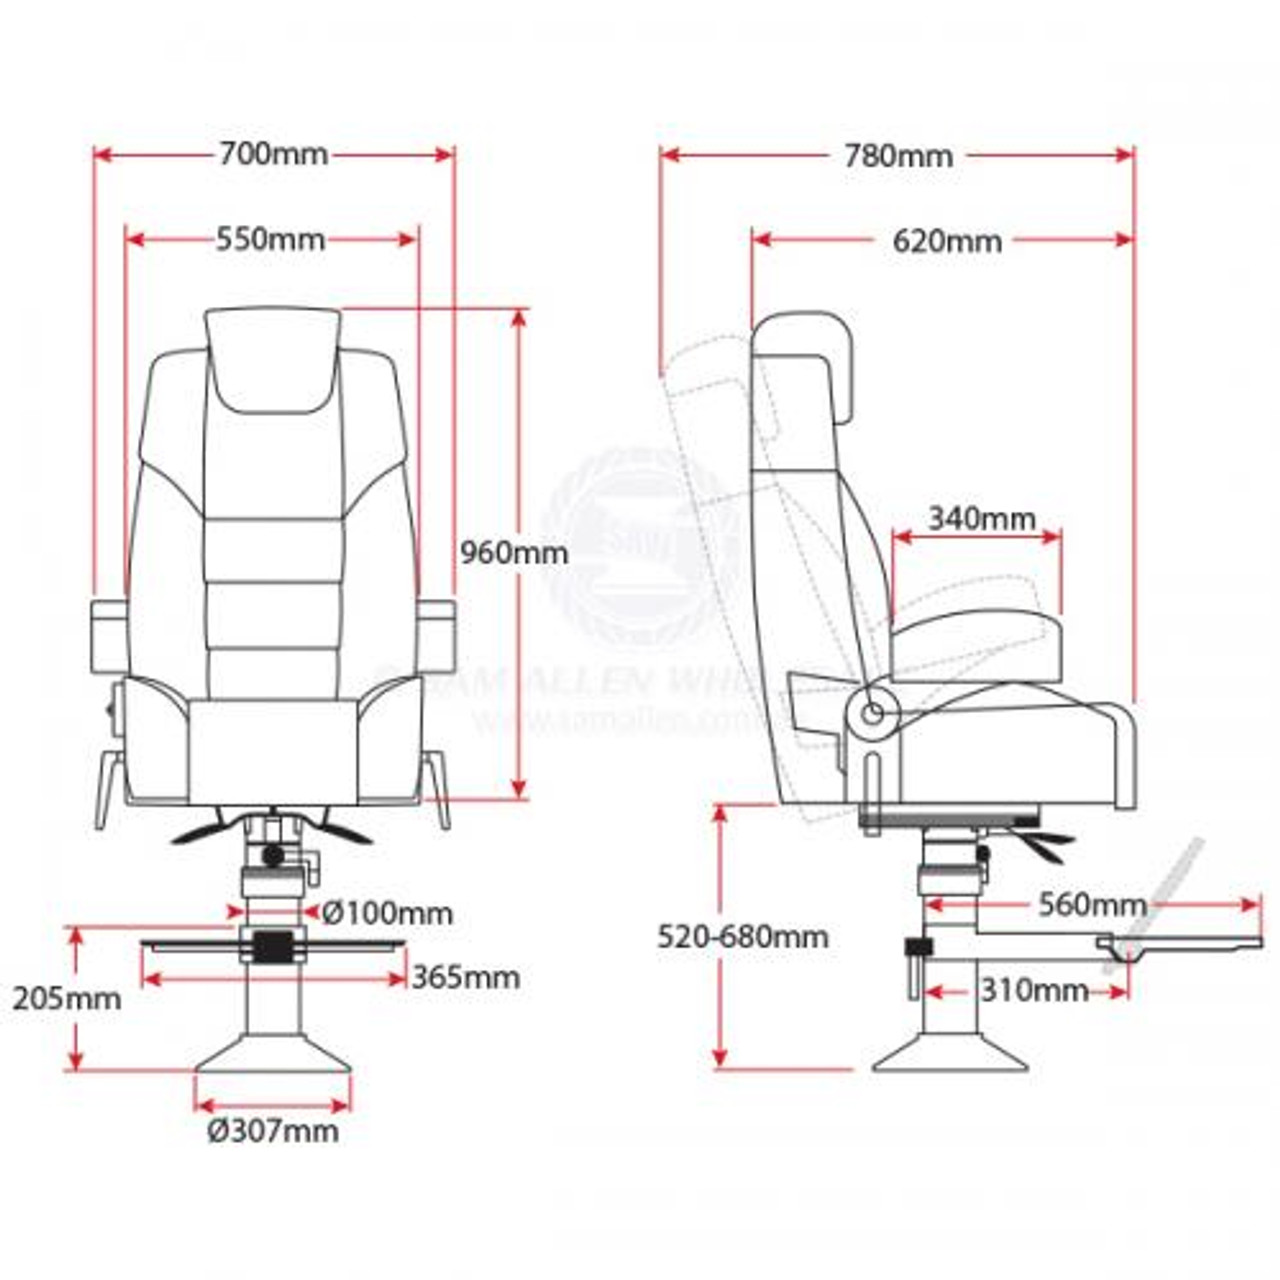 Relaxn Voyager Seat with Pedestal Dimensions